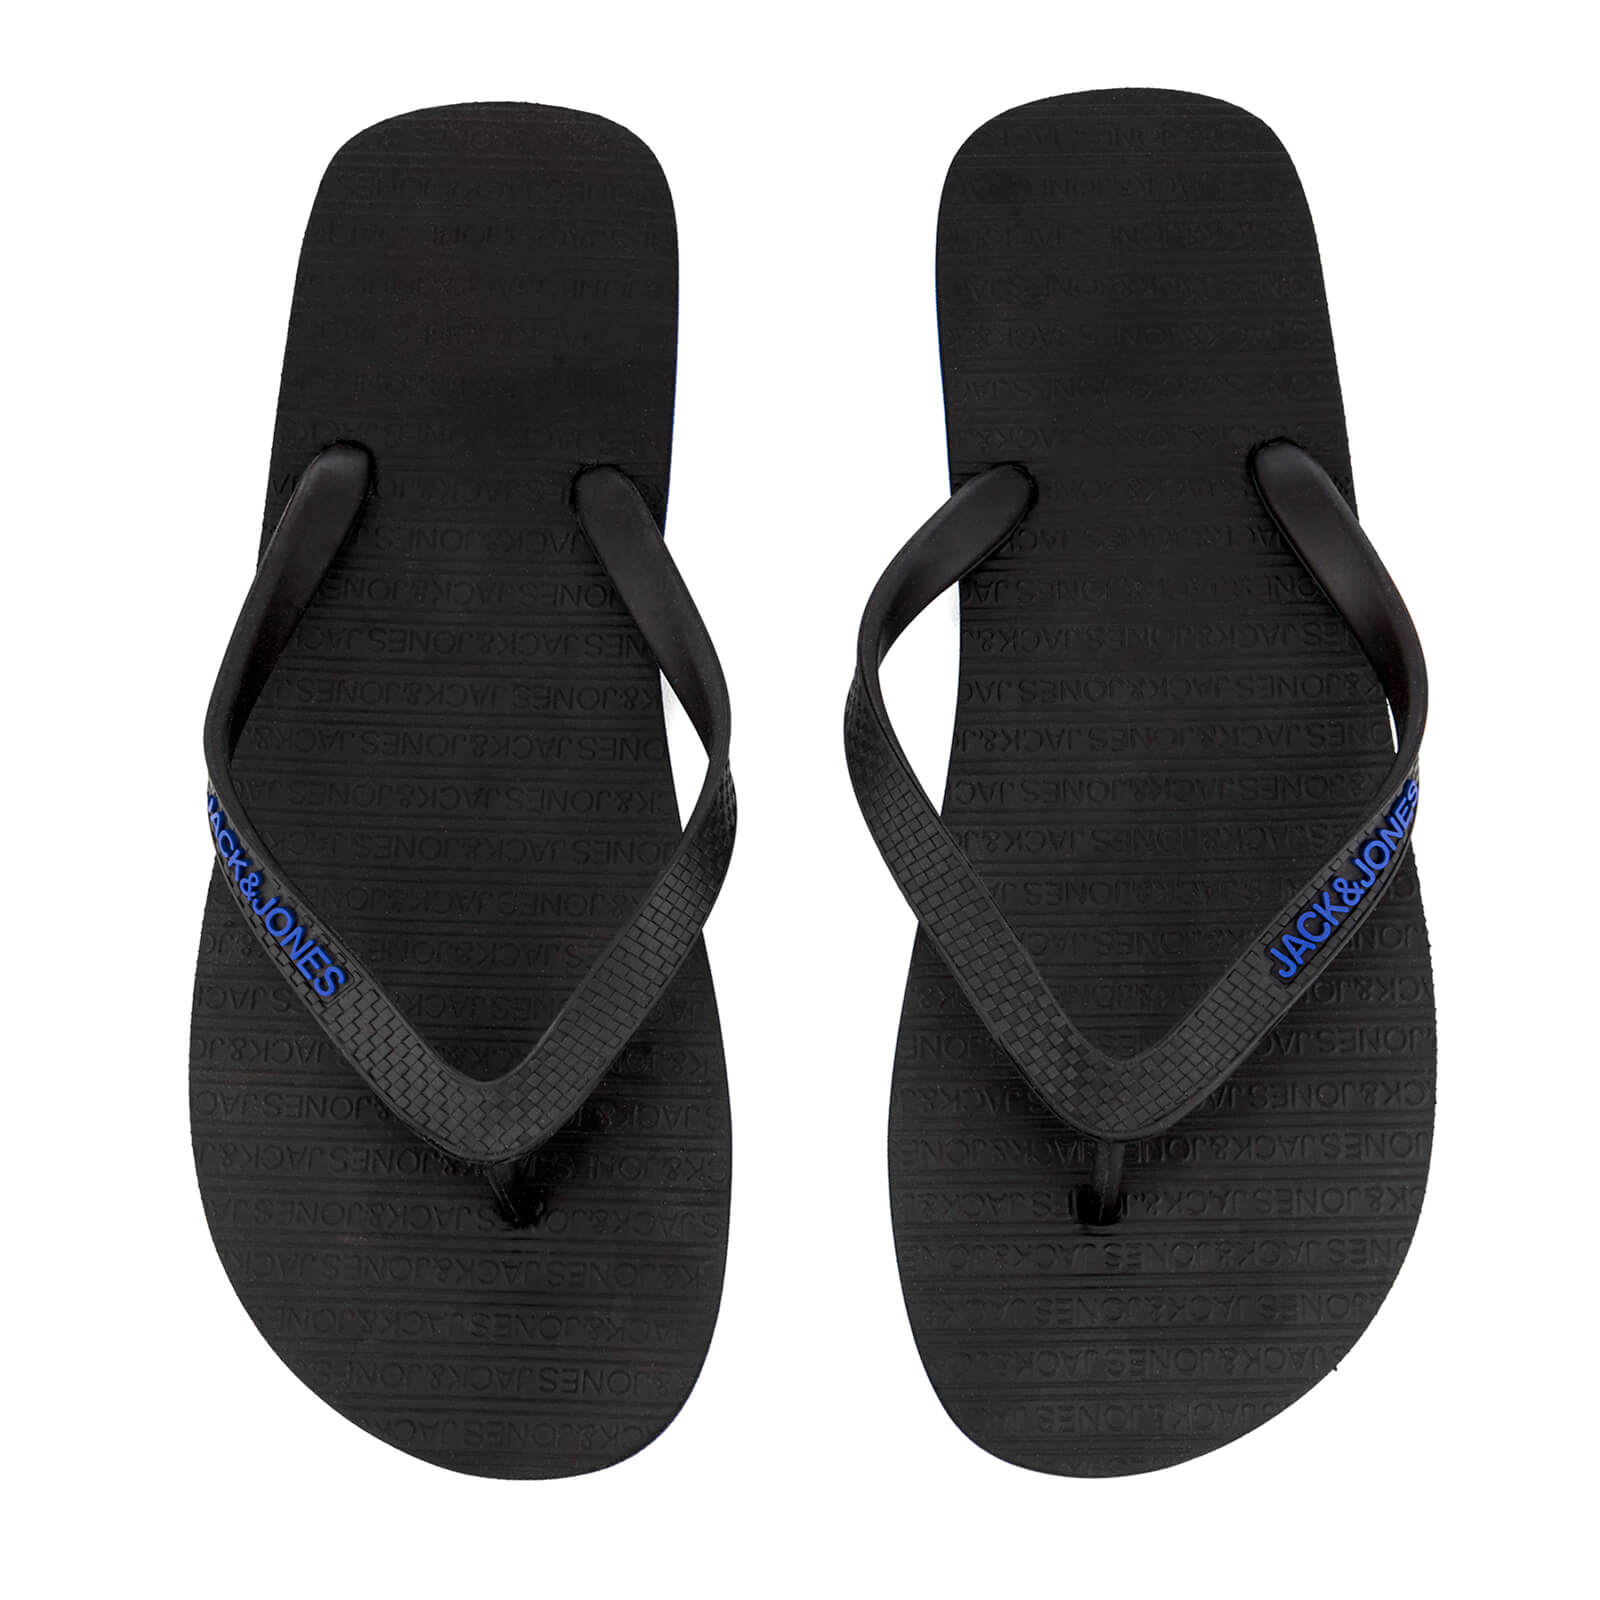 a351d9b9e Jack   Jones Men s Plain Flip Flops - Anthracite Turkish Sea Mens Footwear